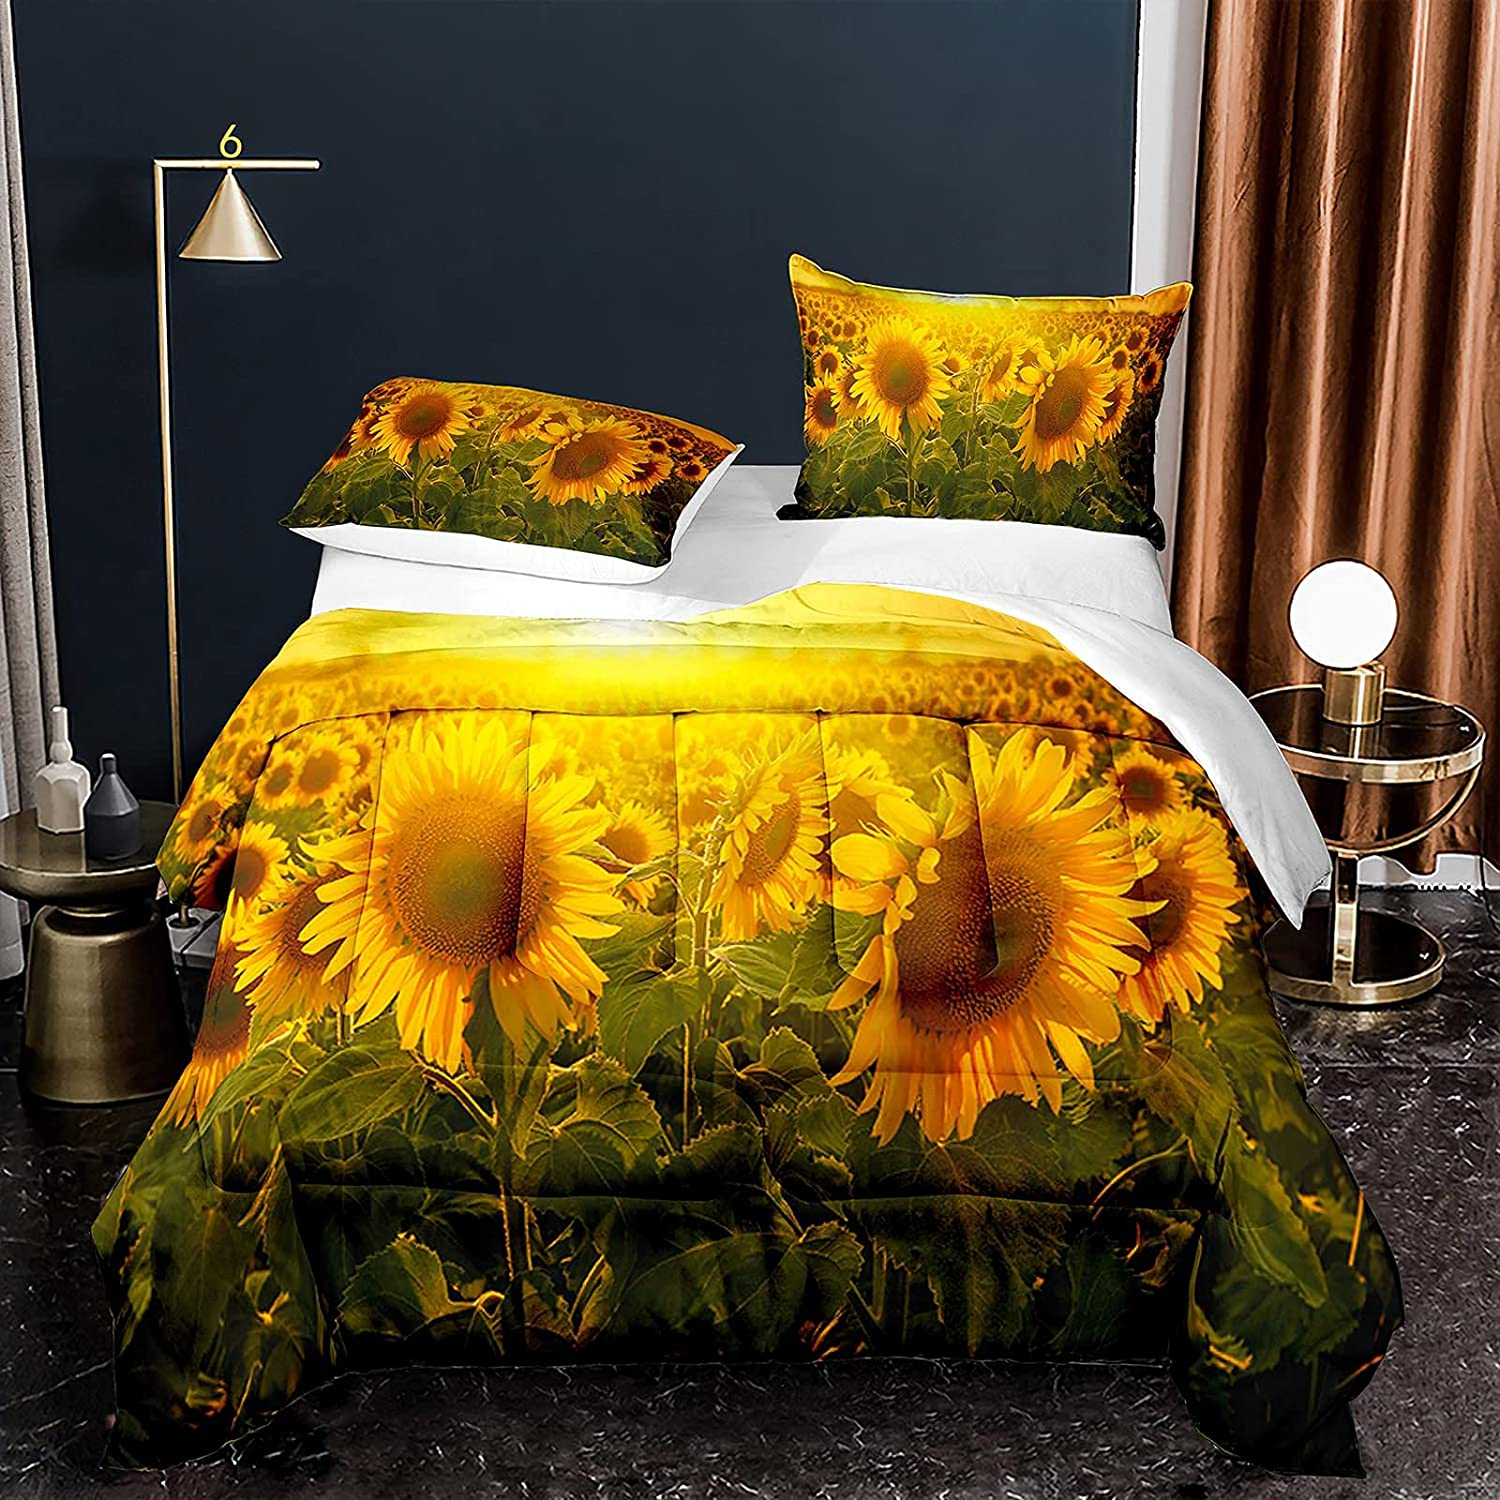 Sunflower Las Vegas New Free Shipping Mall Sunset Bedding Comforter Set Flowers Floral Size Queen